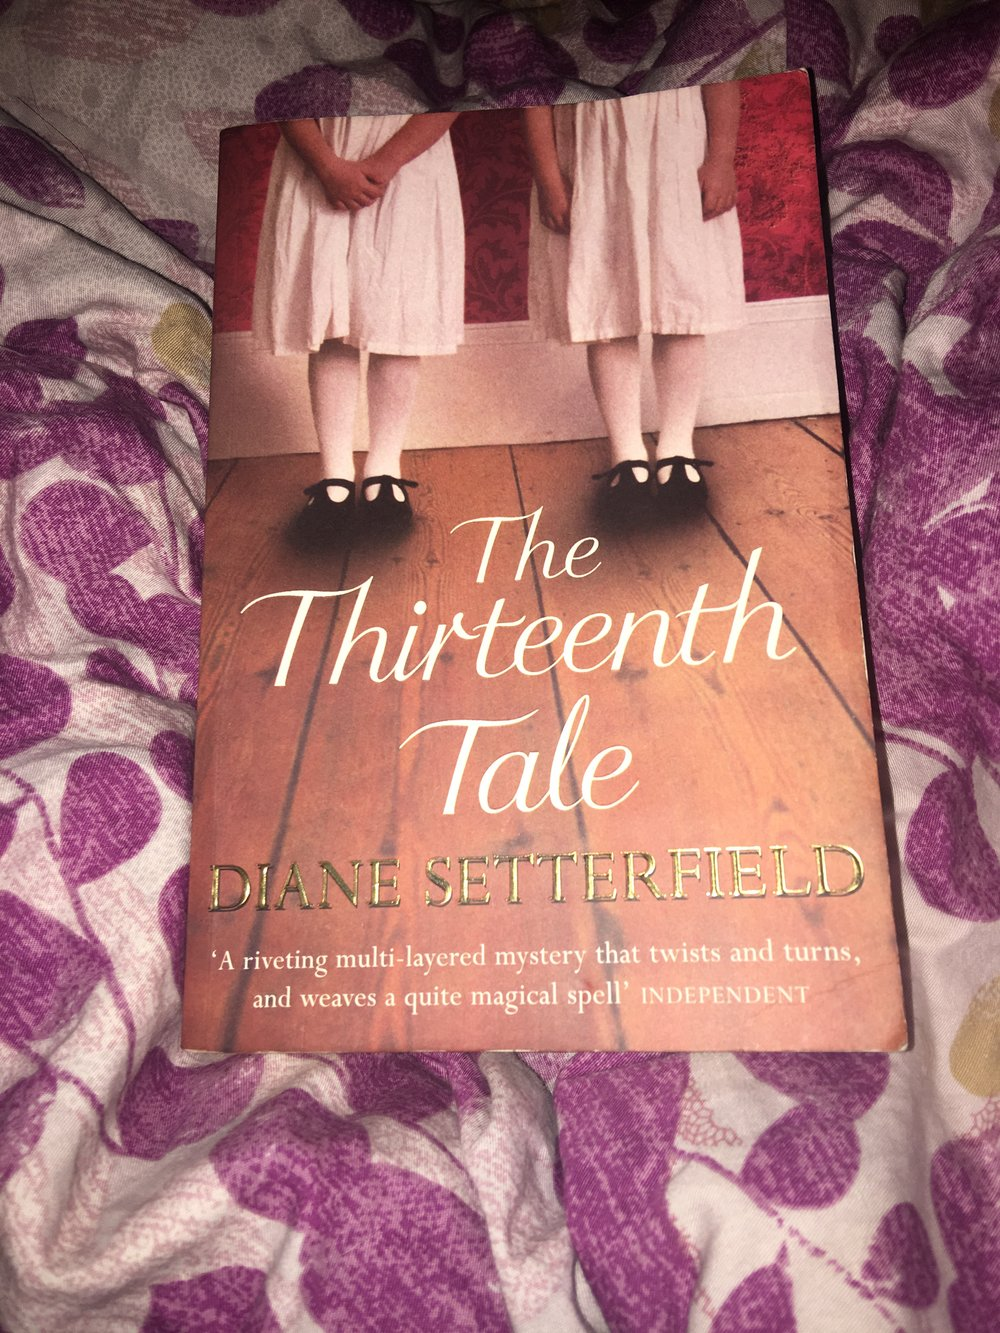 The Thirteenth Tale - By Diane Setterfield | StandaloneMy rating: 5 stars  |  Pages: 456What made me pick it up: Travelling Book Group PickFormat: Physical  |  Source: Friend2018 challenge/s: BookRiot ReadHarder; Goodreads Reading Challenge